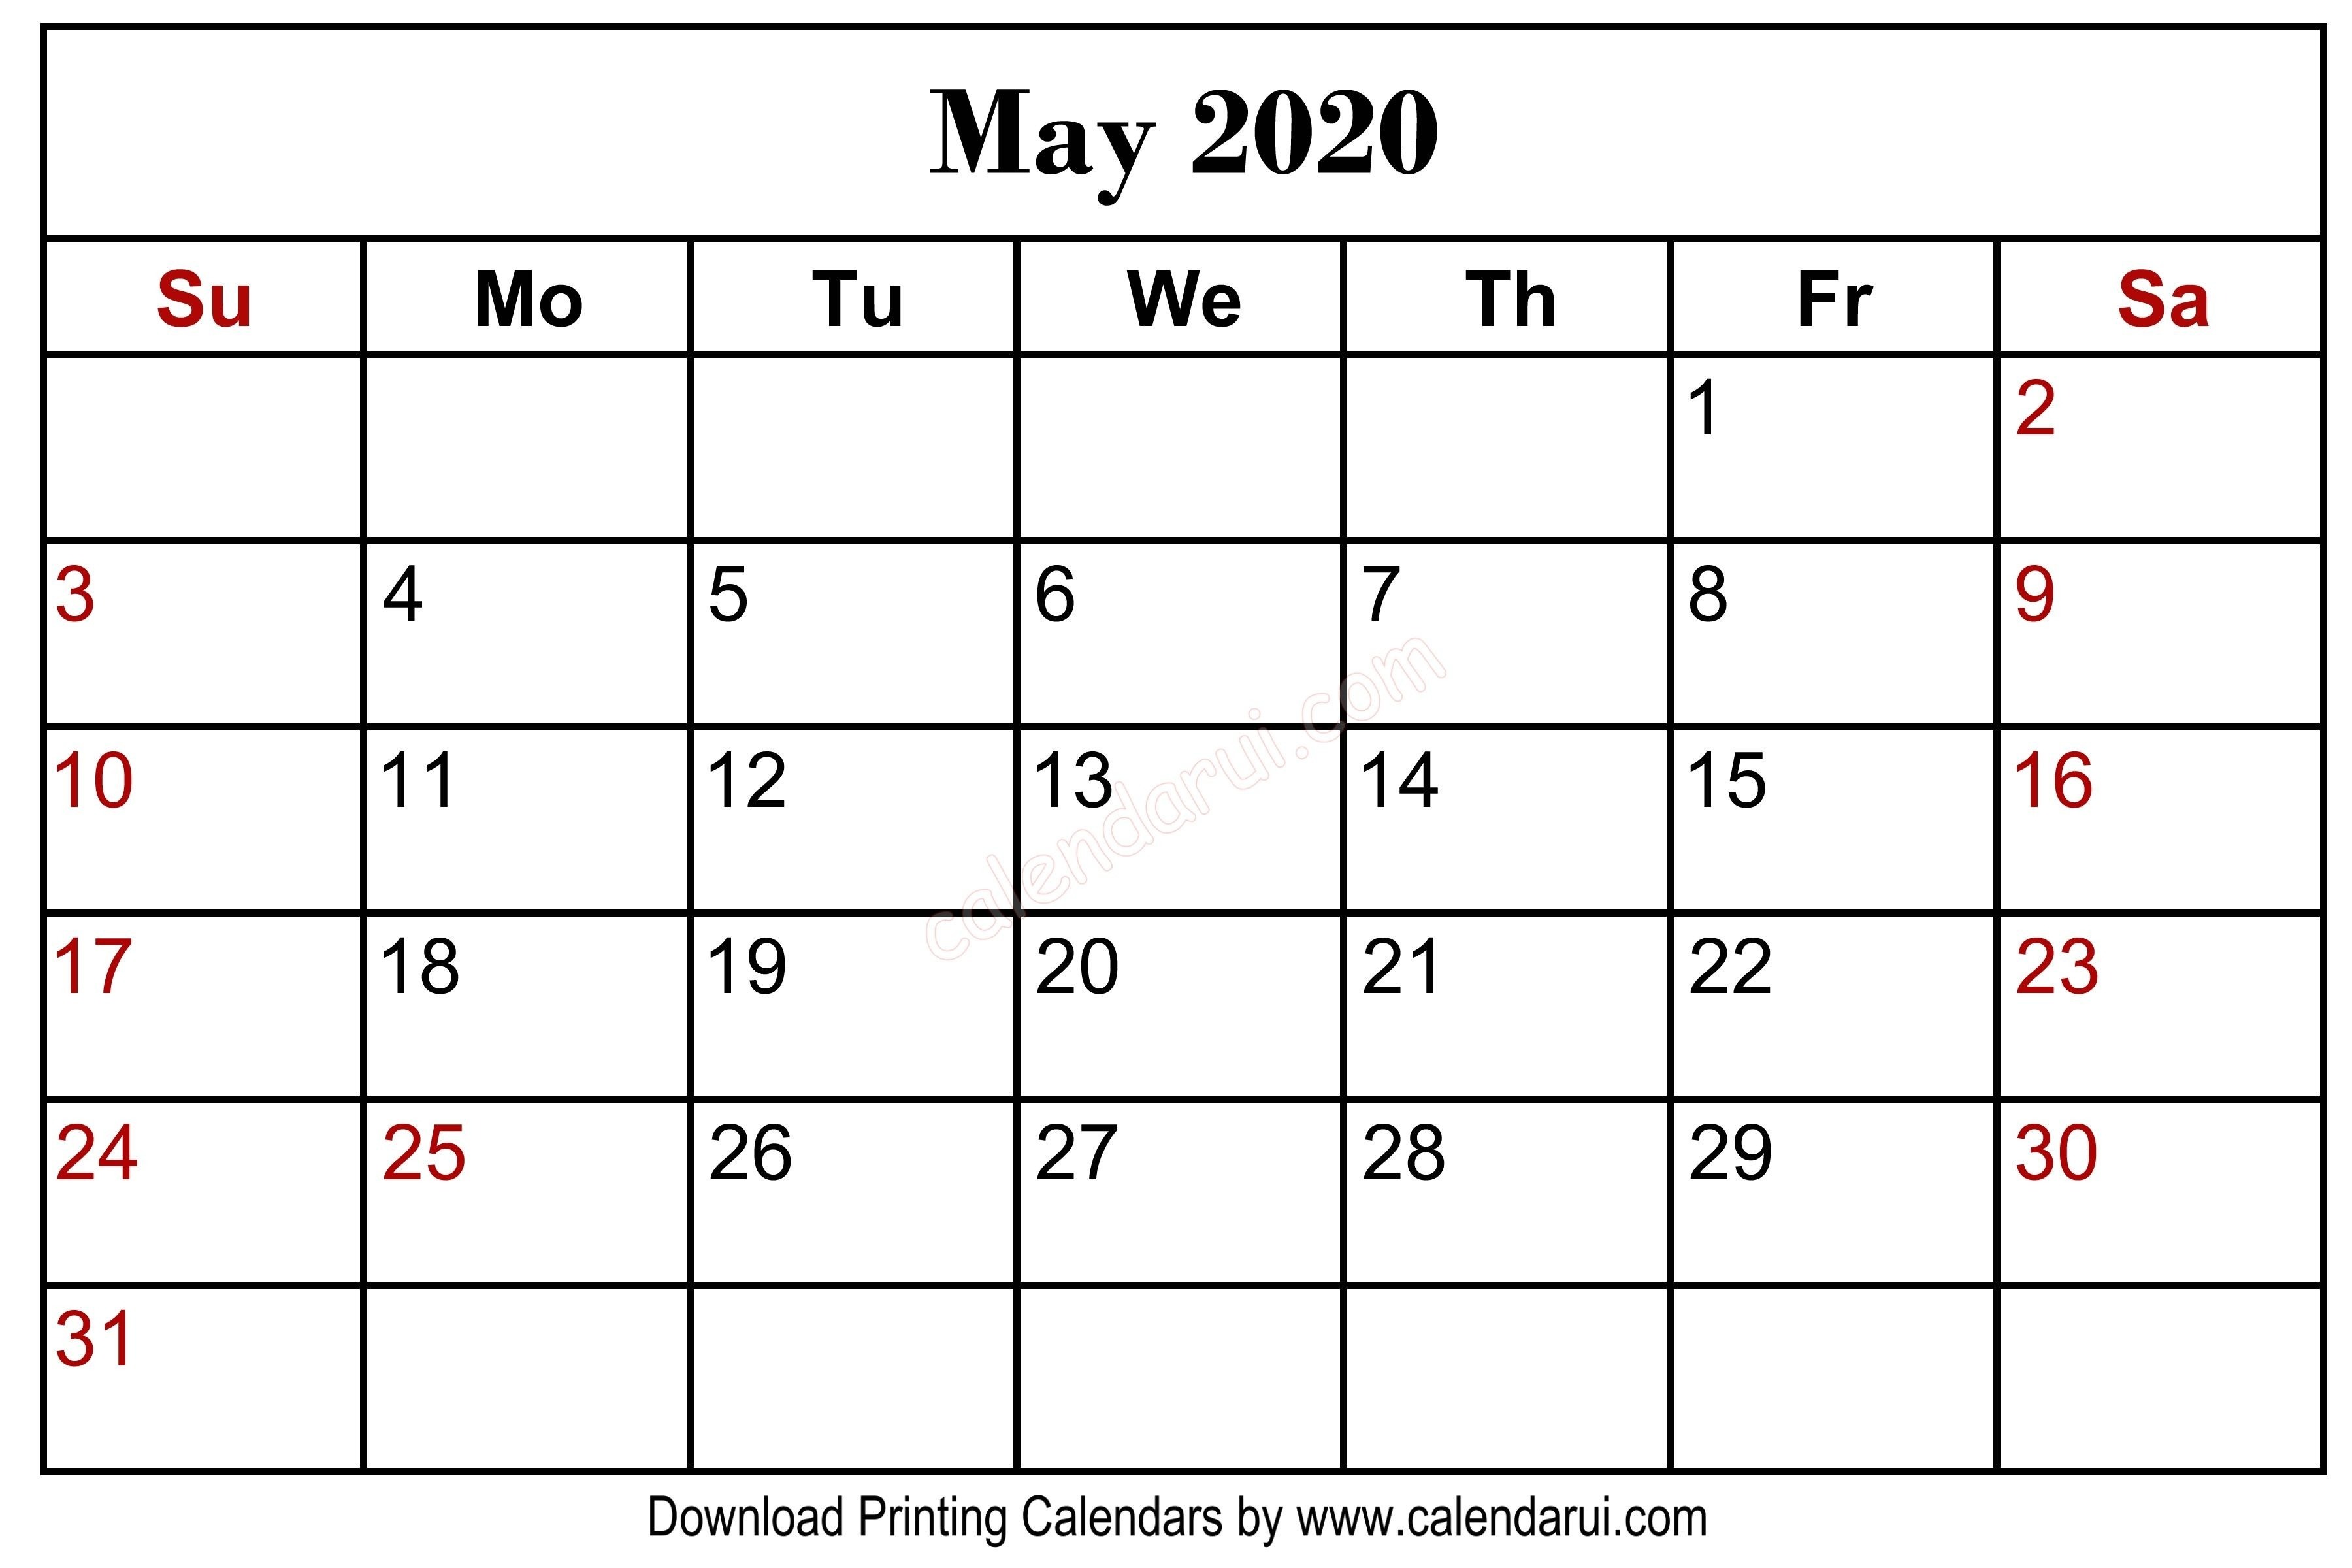 May 2020 Blank Calendar Printable Free Download Centre-January 2020 Calendar Kalnirnay